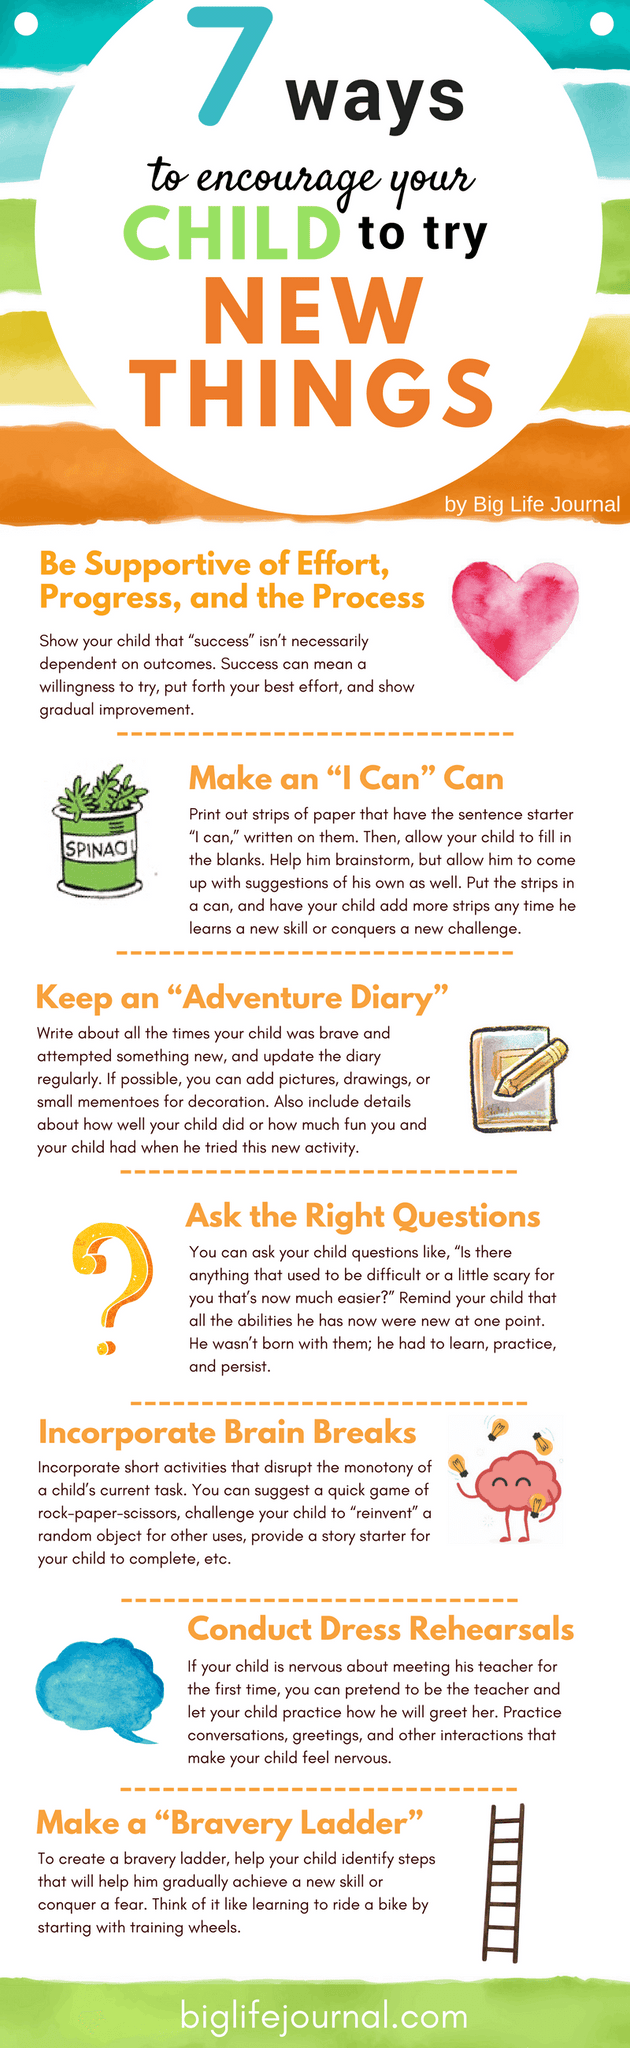 Adventure Story Ideas 7 ways to encourage your child to try new things – big life